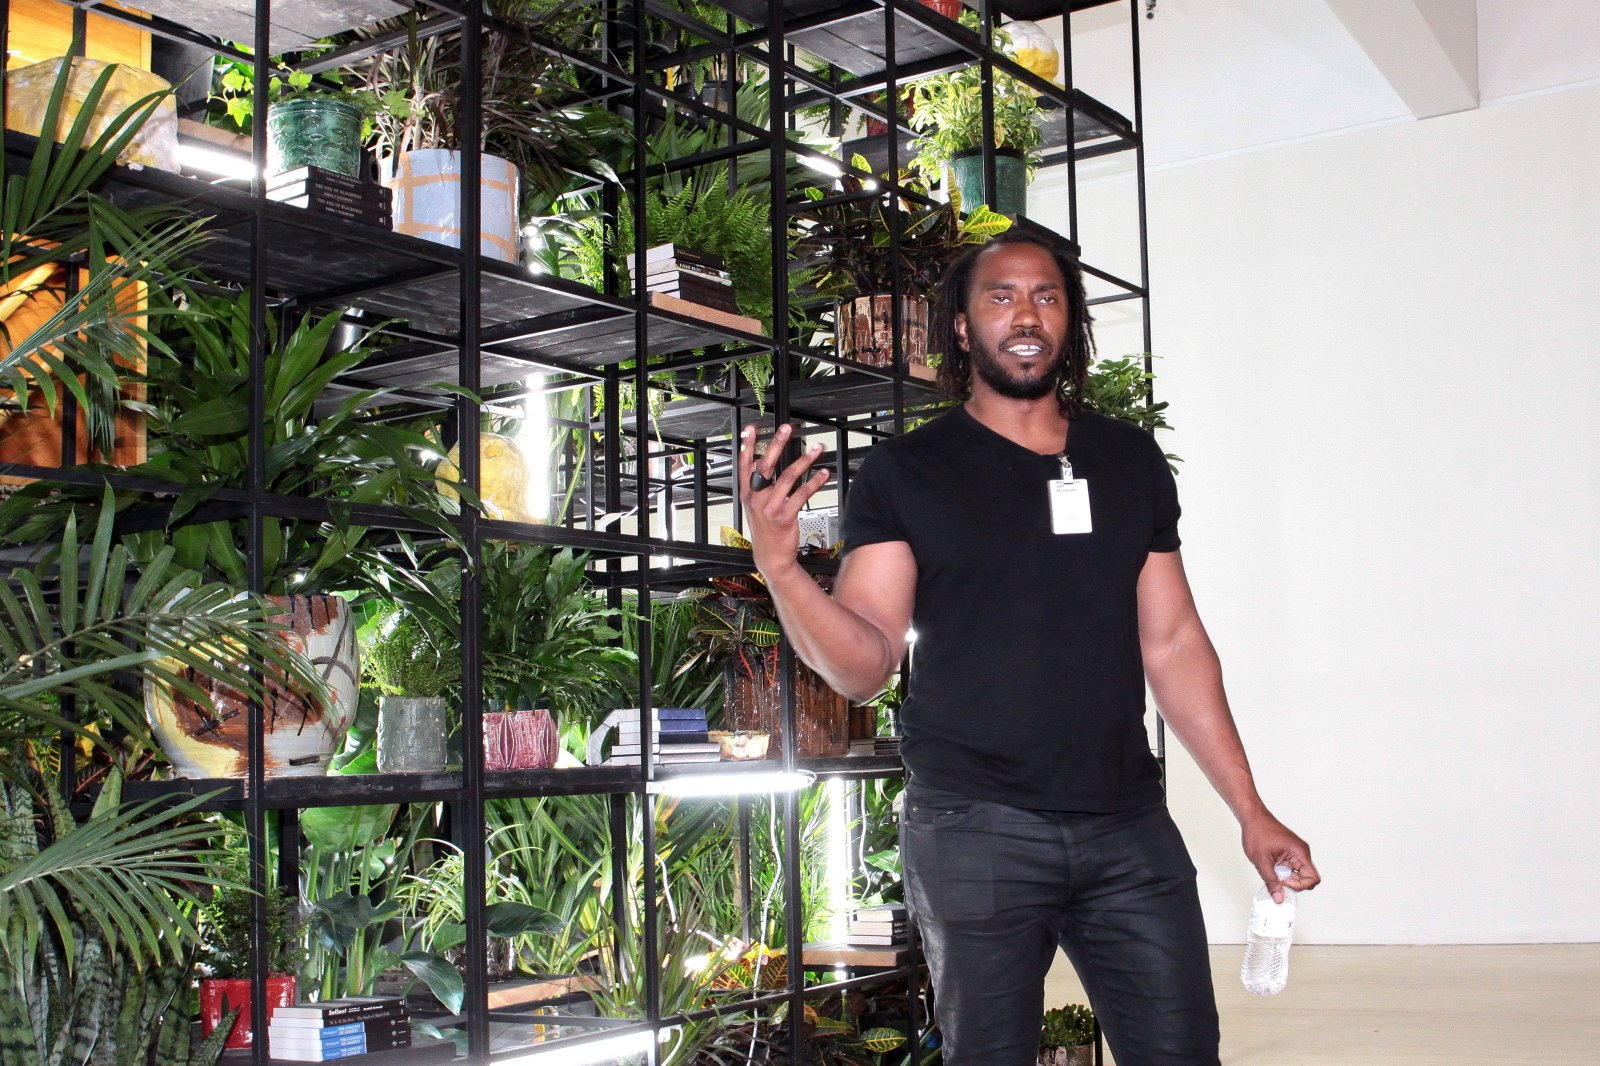 Artist Rashid Johnson speaks to the press about what inspired him, the materials utilized and the scale of his work in making Antoine\'s Organ